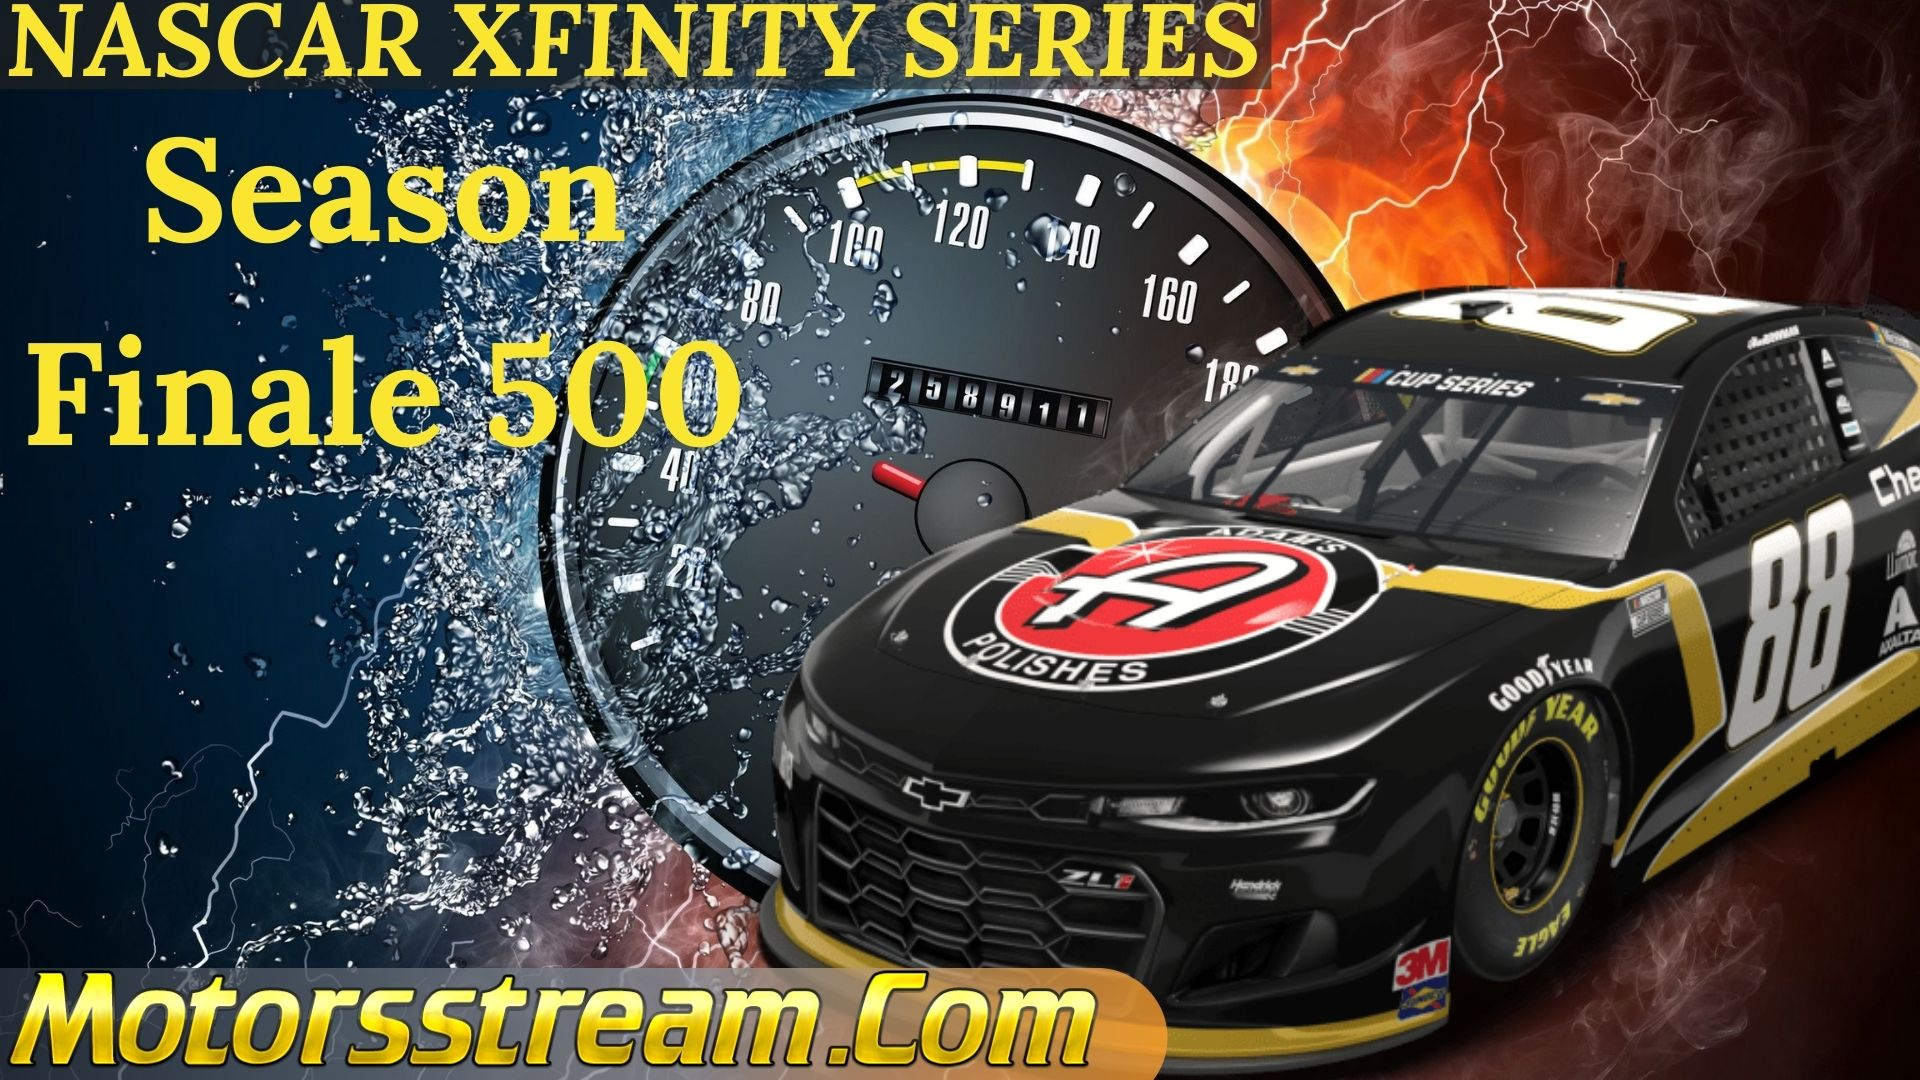 NASCAR Cup Series Finale 500 Live Stream